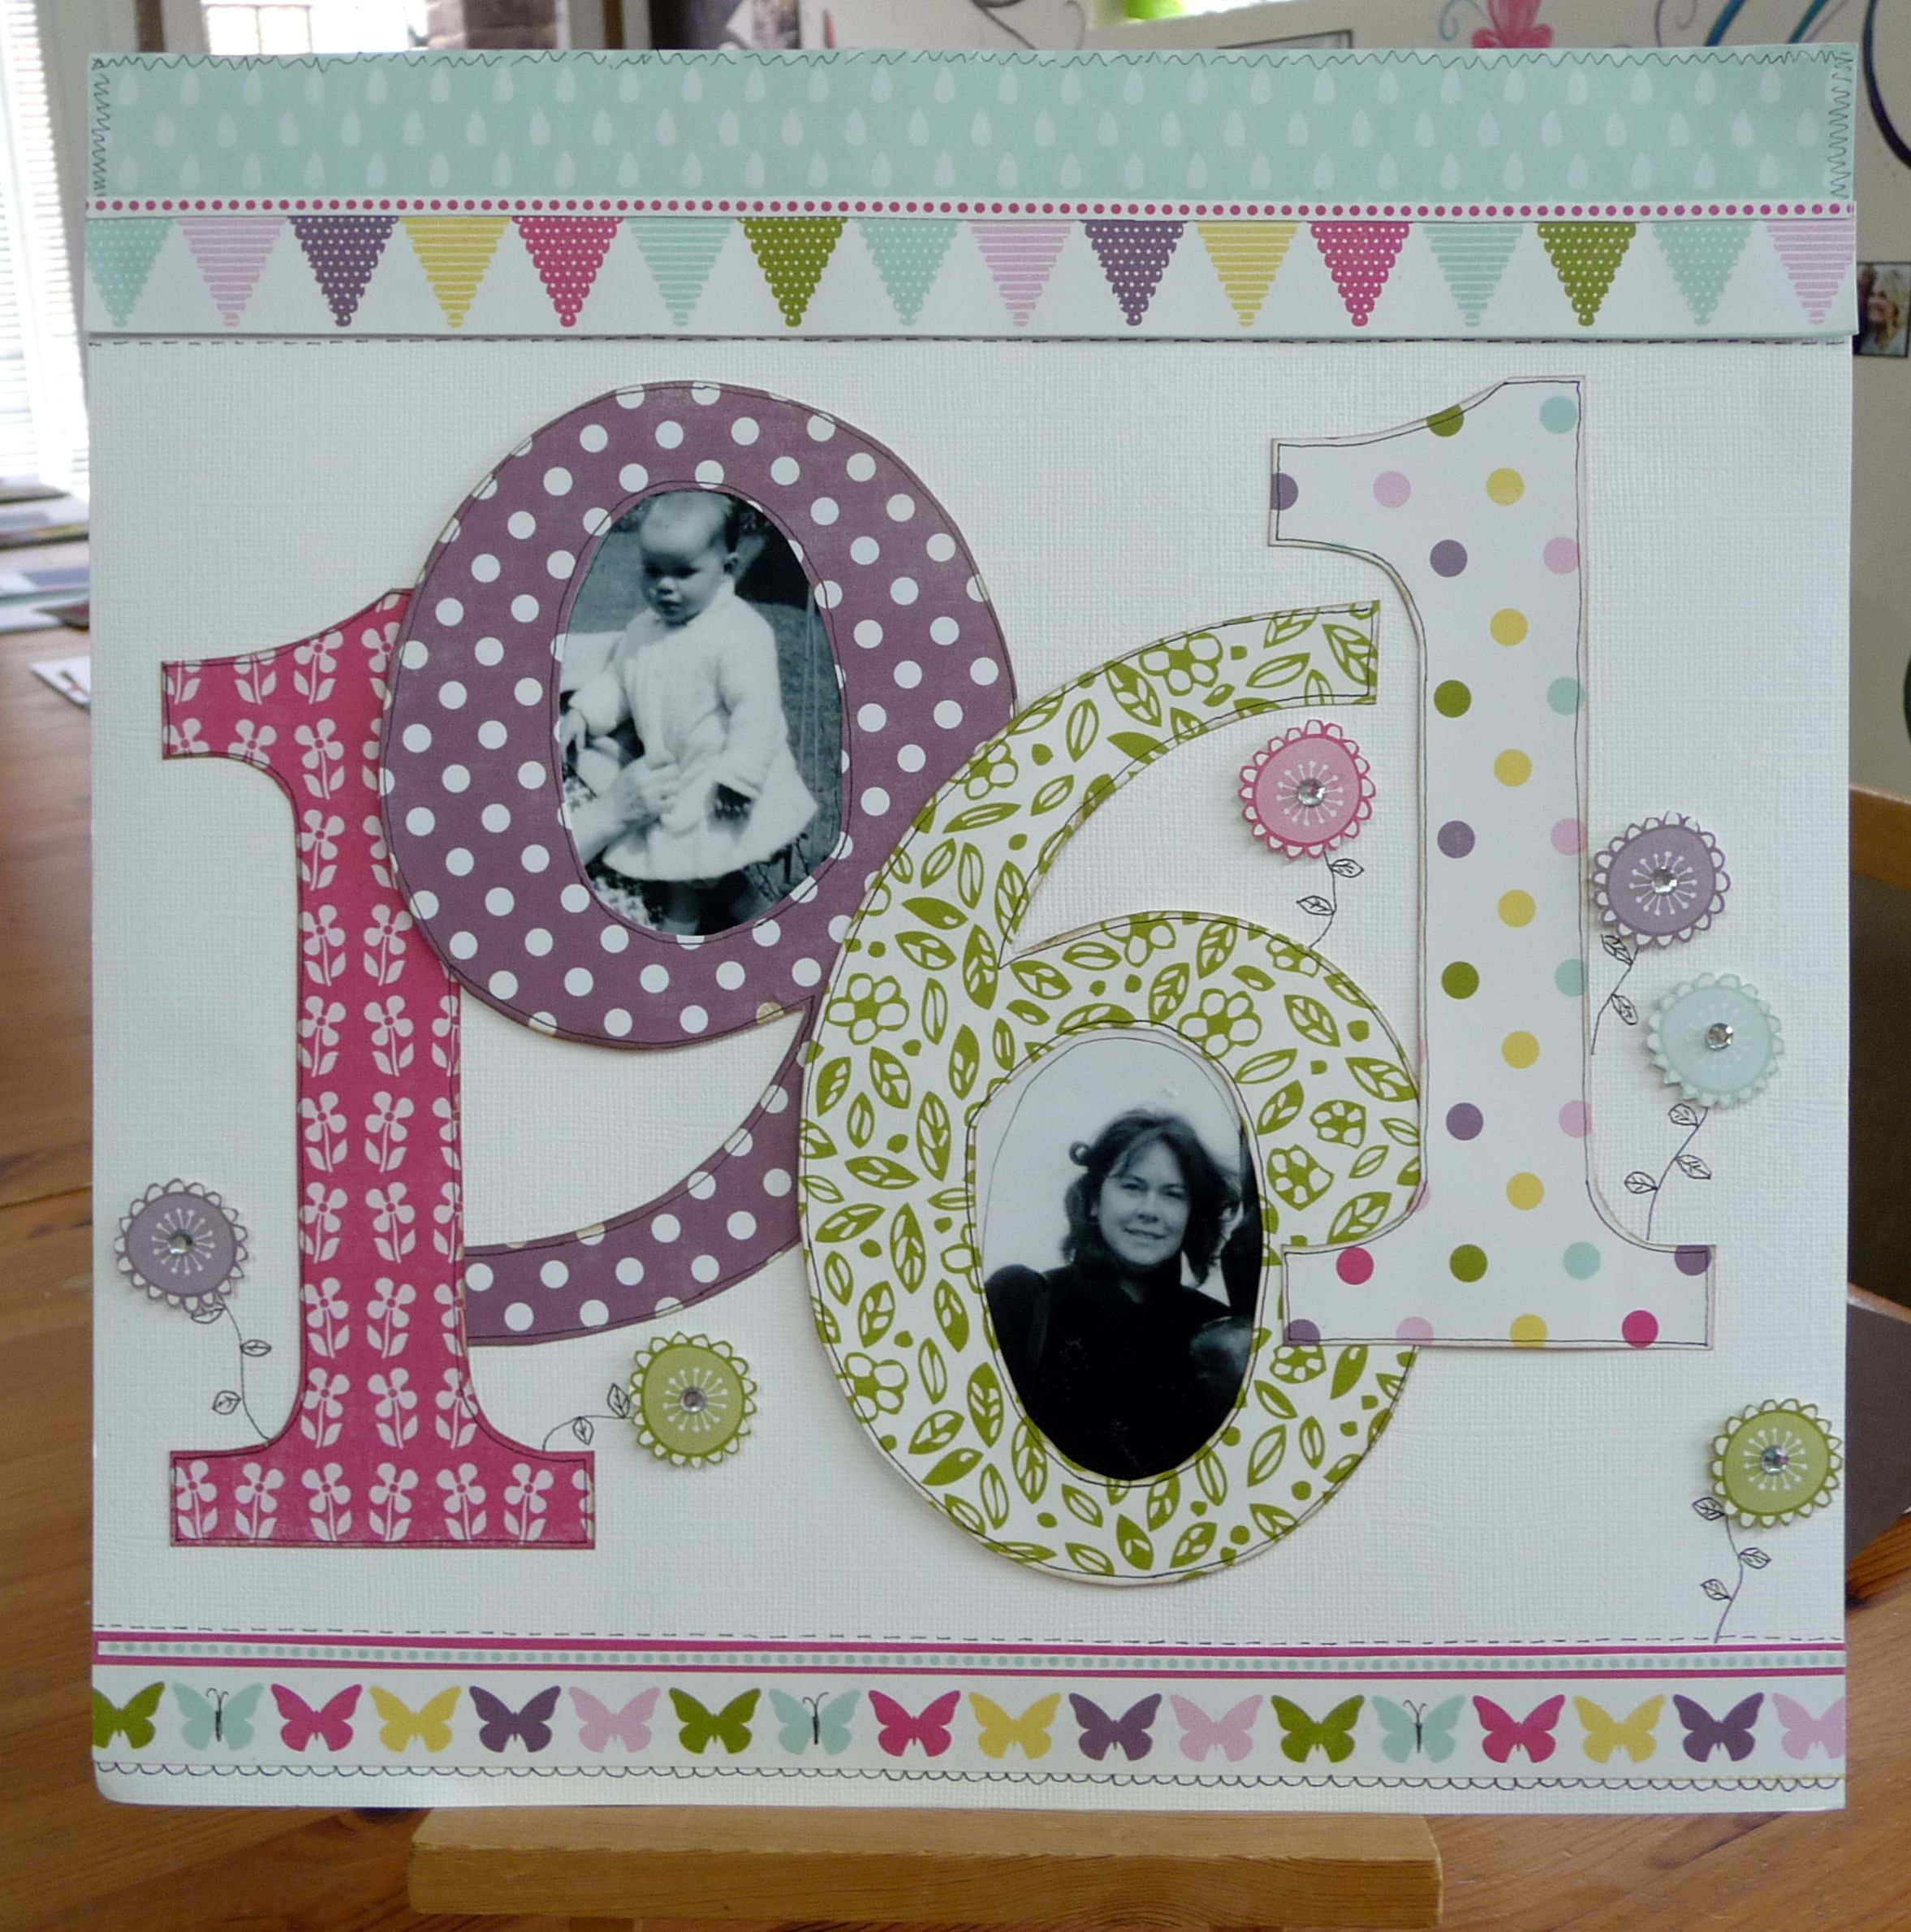 Fotoalbum Für Freund Gestalten I Like This For The Kids Birth Years Diy D1 Blogspot Ch